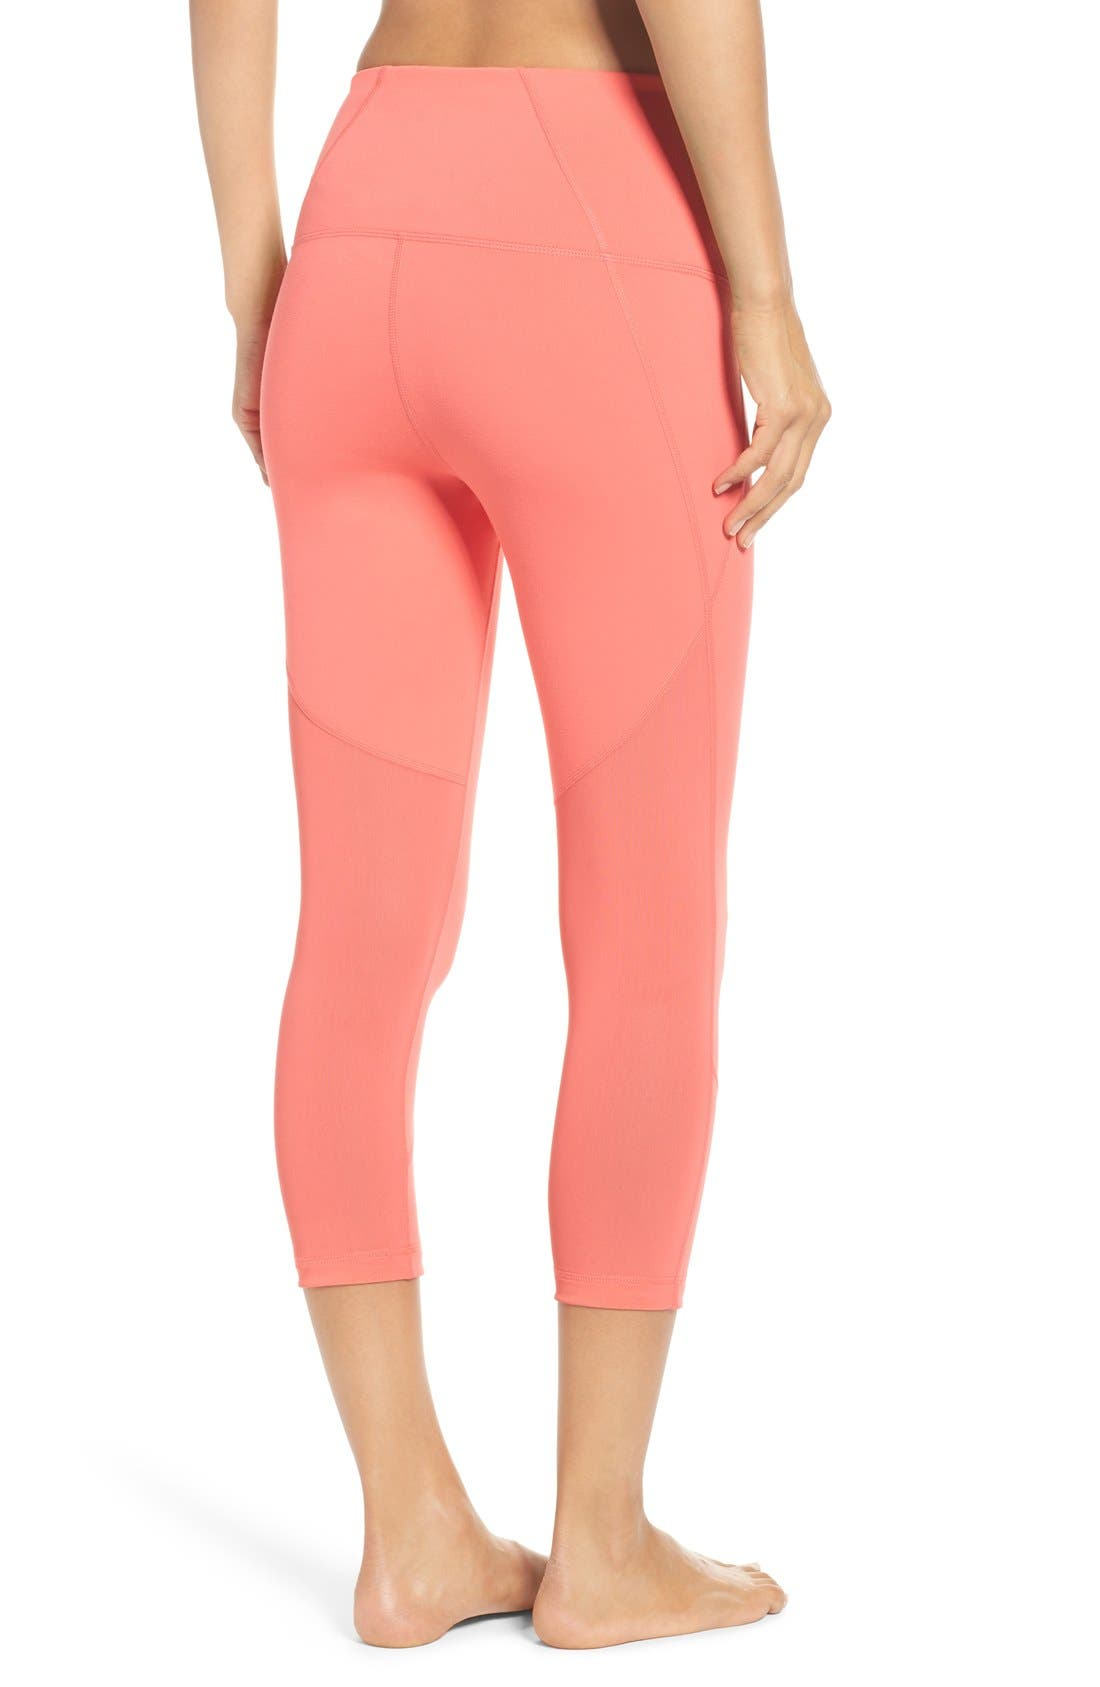 Main Image - Zella 'Live In - Sultry' High Waist Mesh Crop Leggings